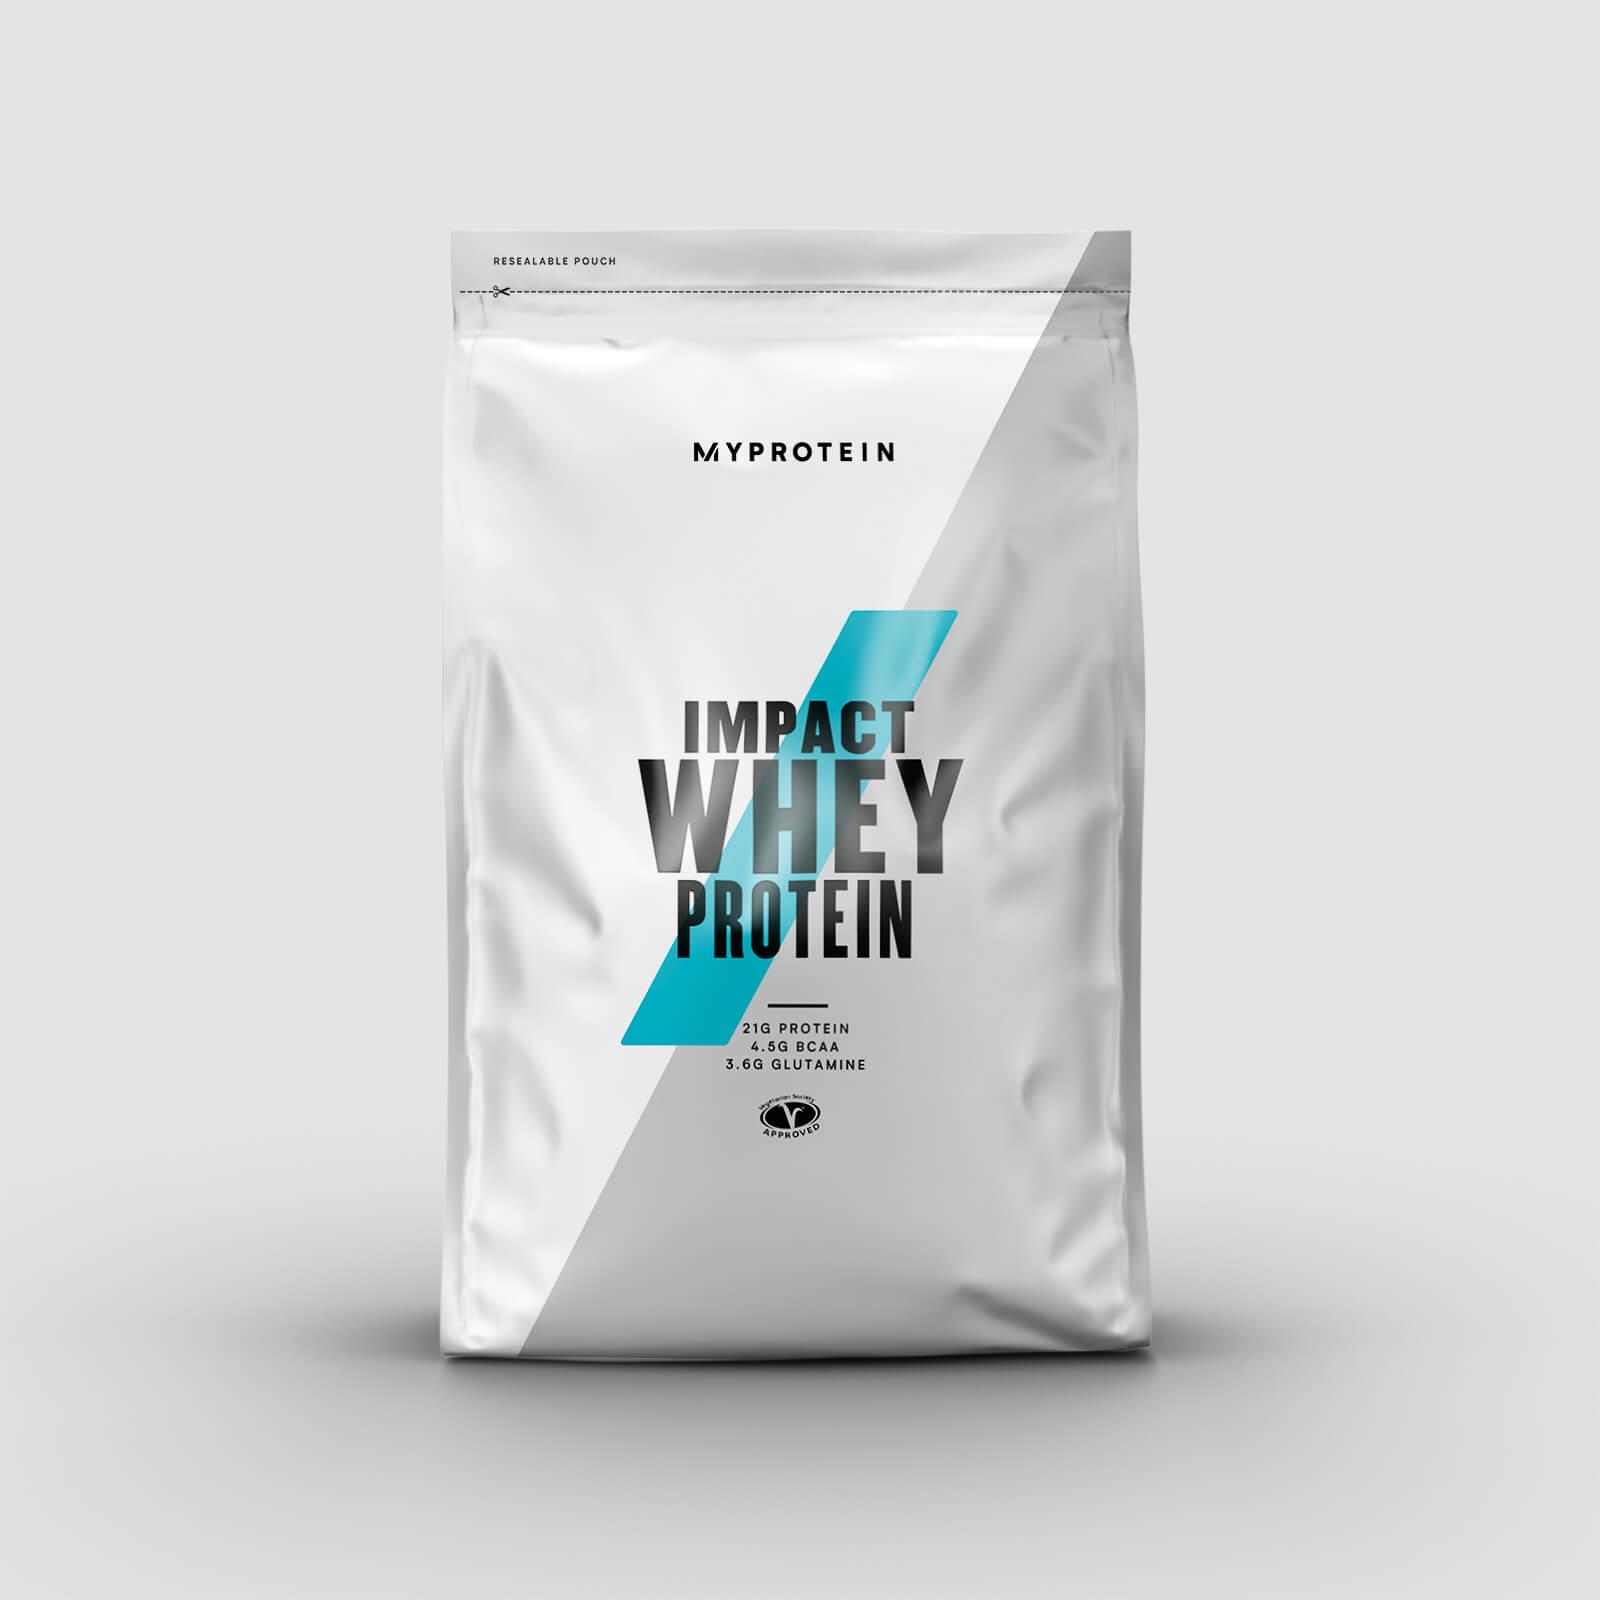 Impact Whey Protein - 1kg - Unflavoured